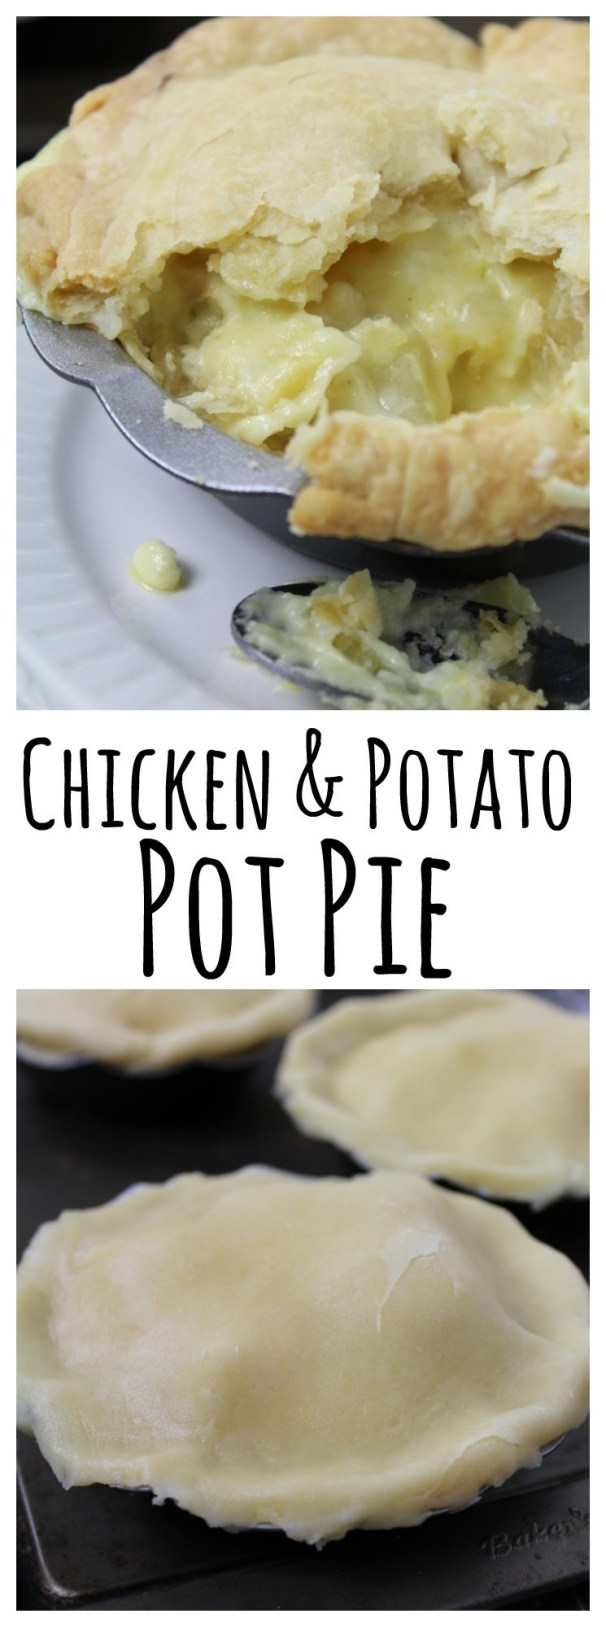 A delicious homemade chicken and potato pot pie with a homemade butter crust - comfort food at it's best!